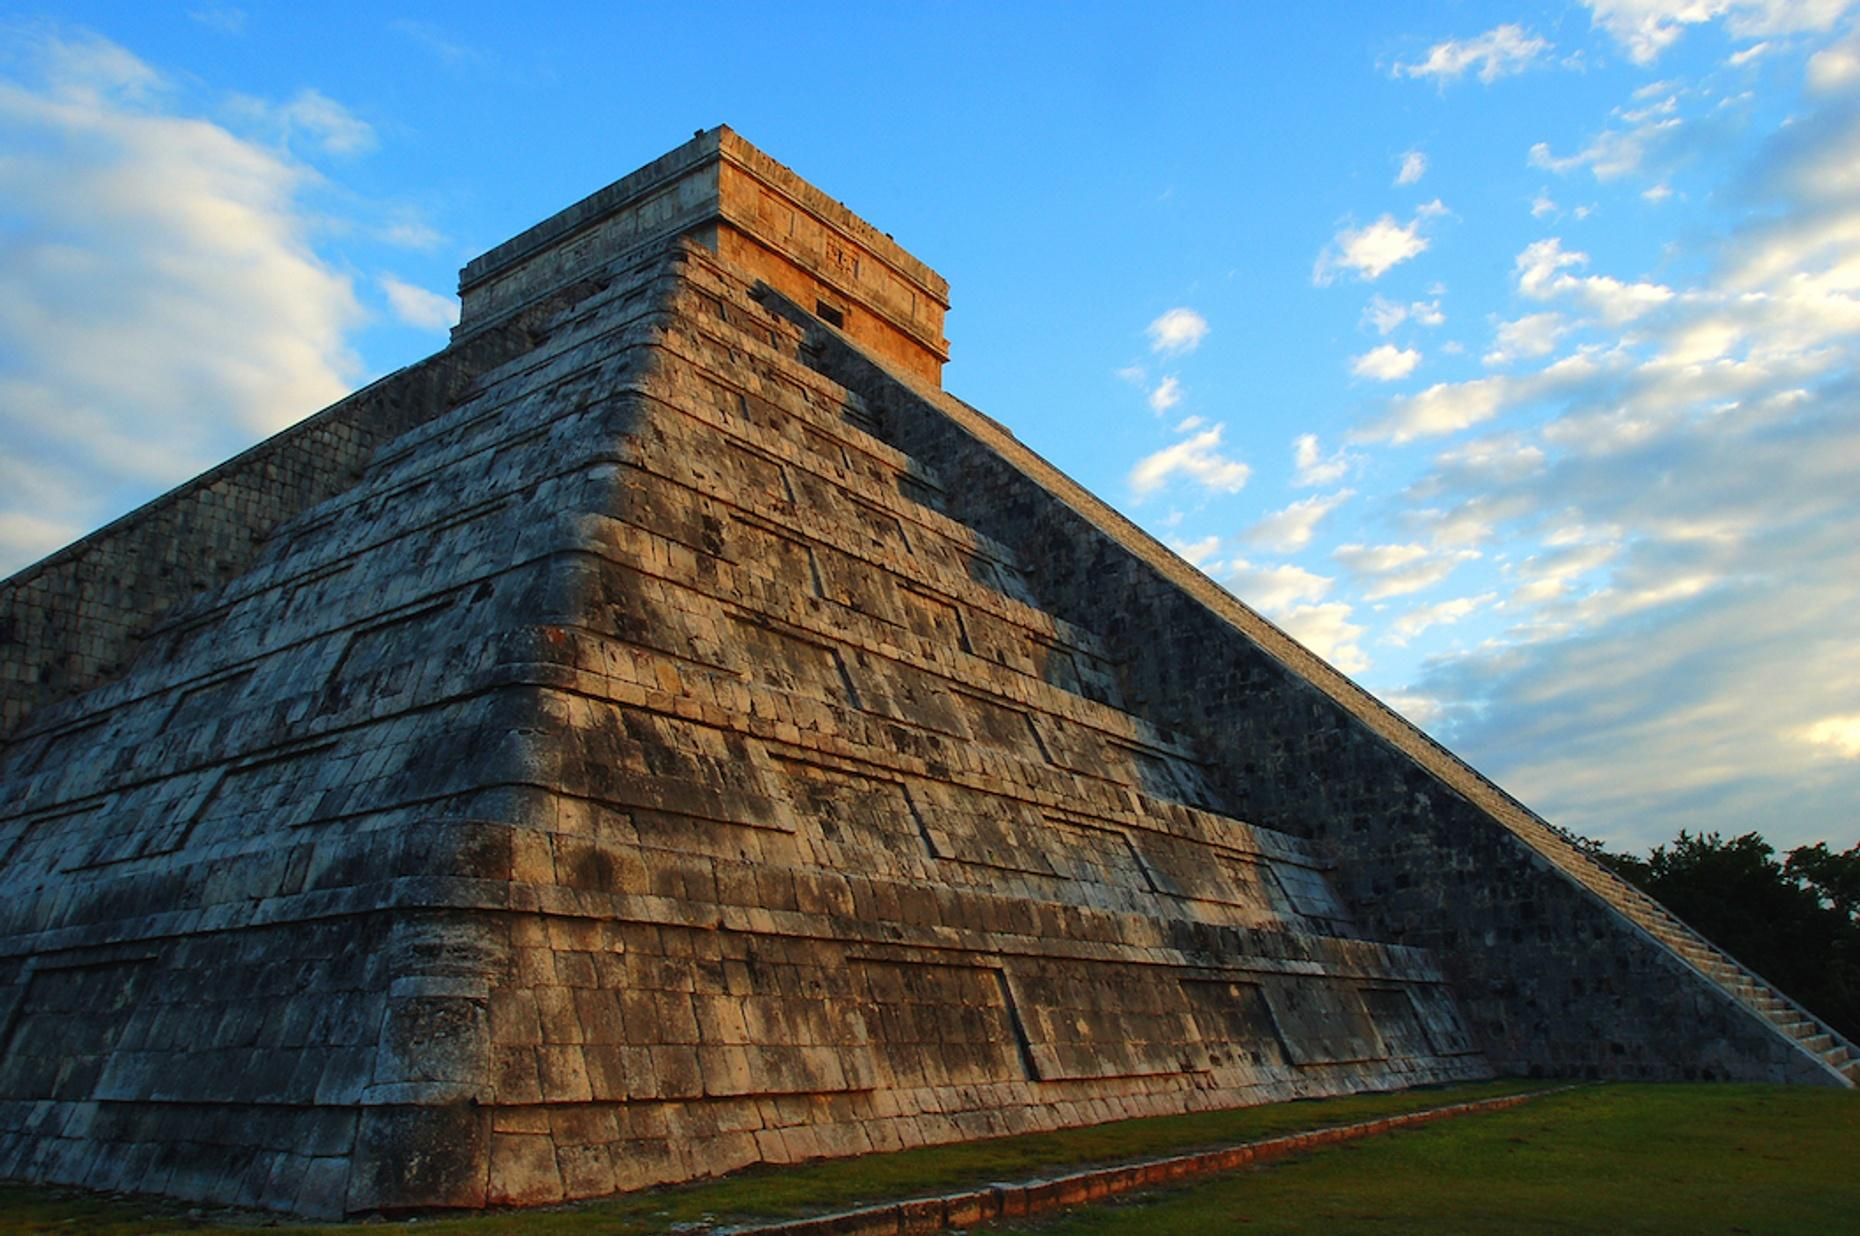 Guided Tour in Spanish of Chichen Itza with Lunch